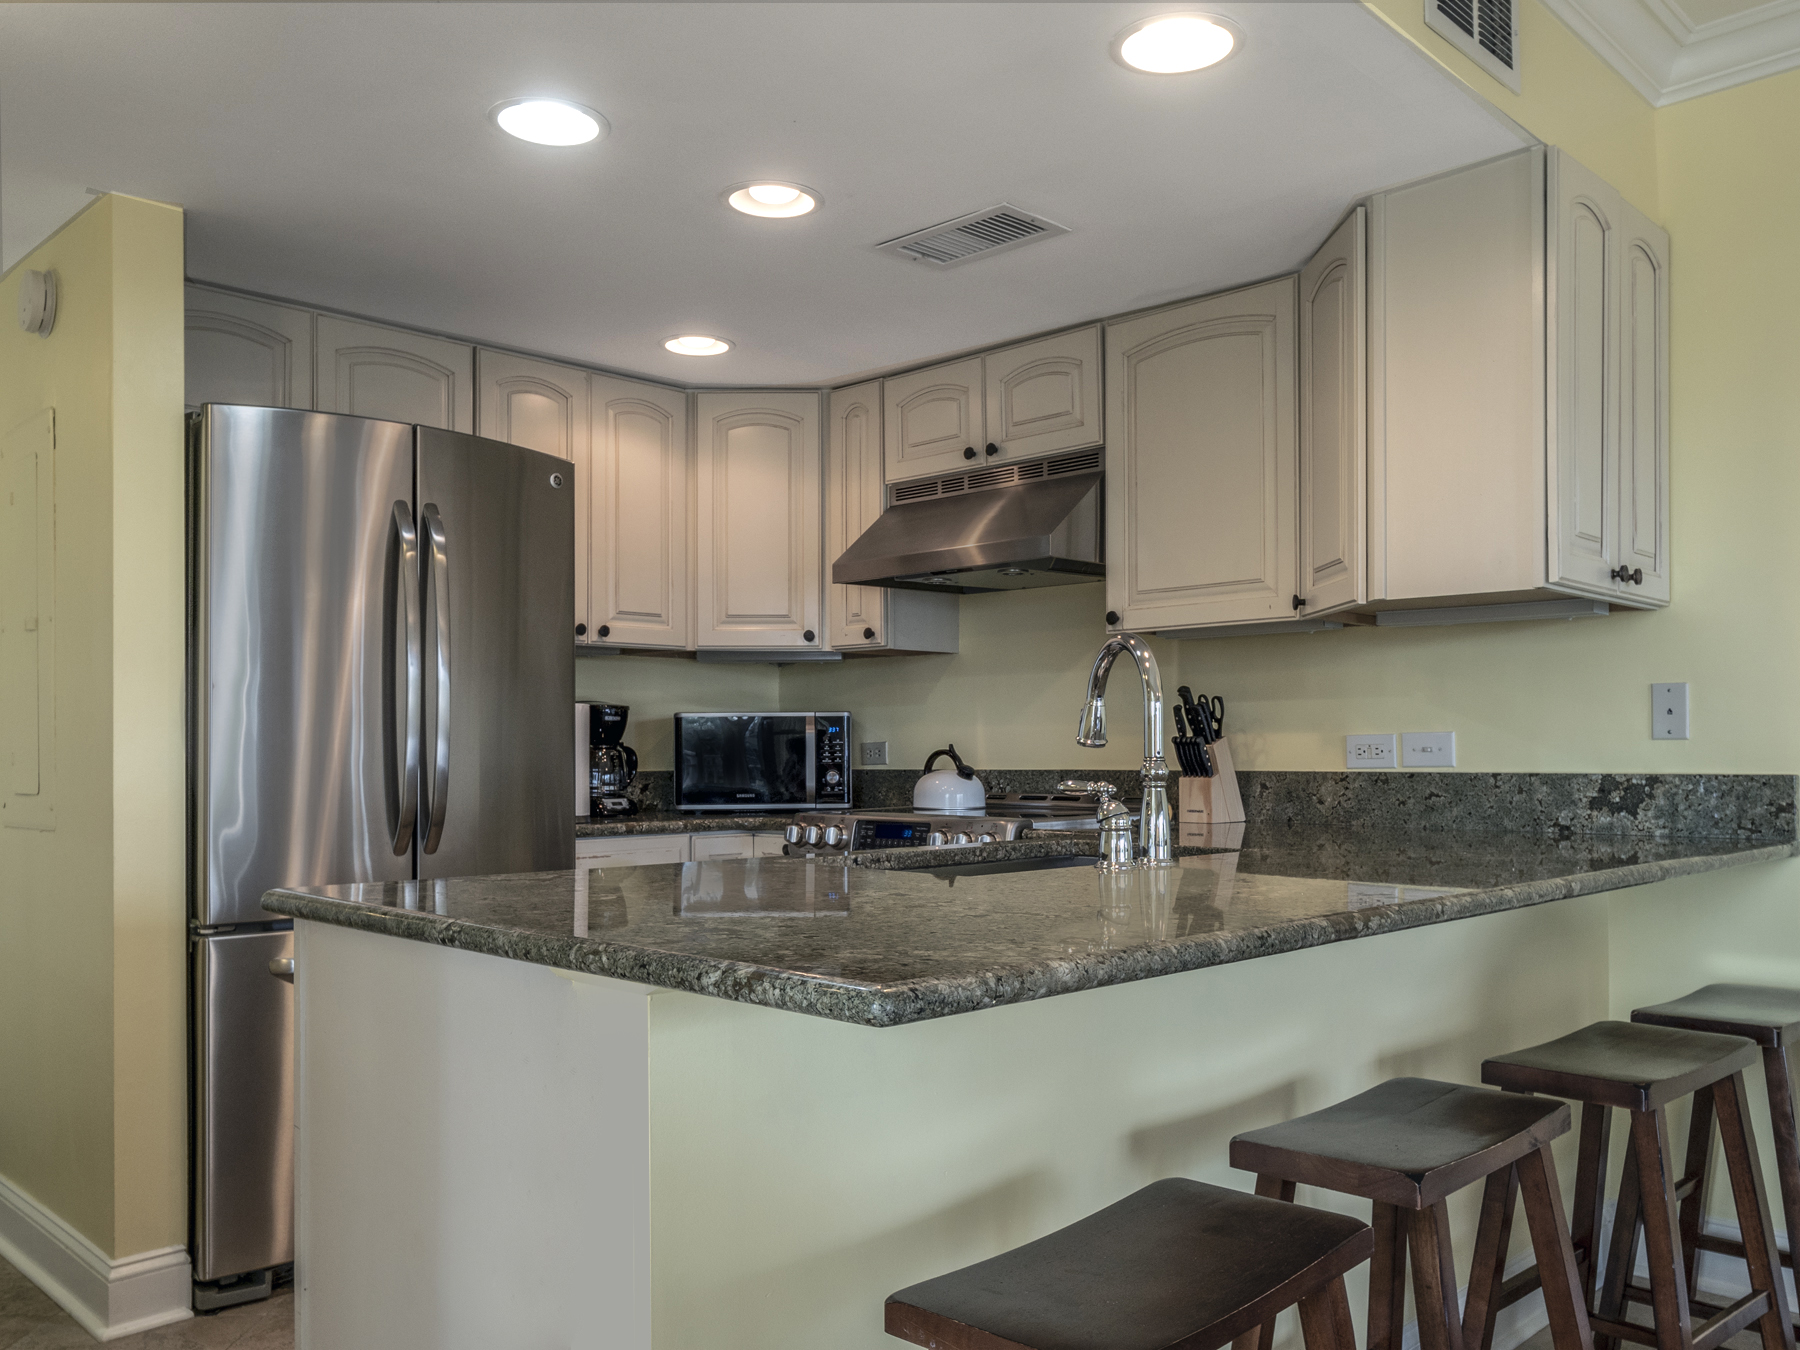 Kitchen with granite counter tops, stainless steel appliances!  Counter seating for four.